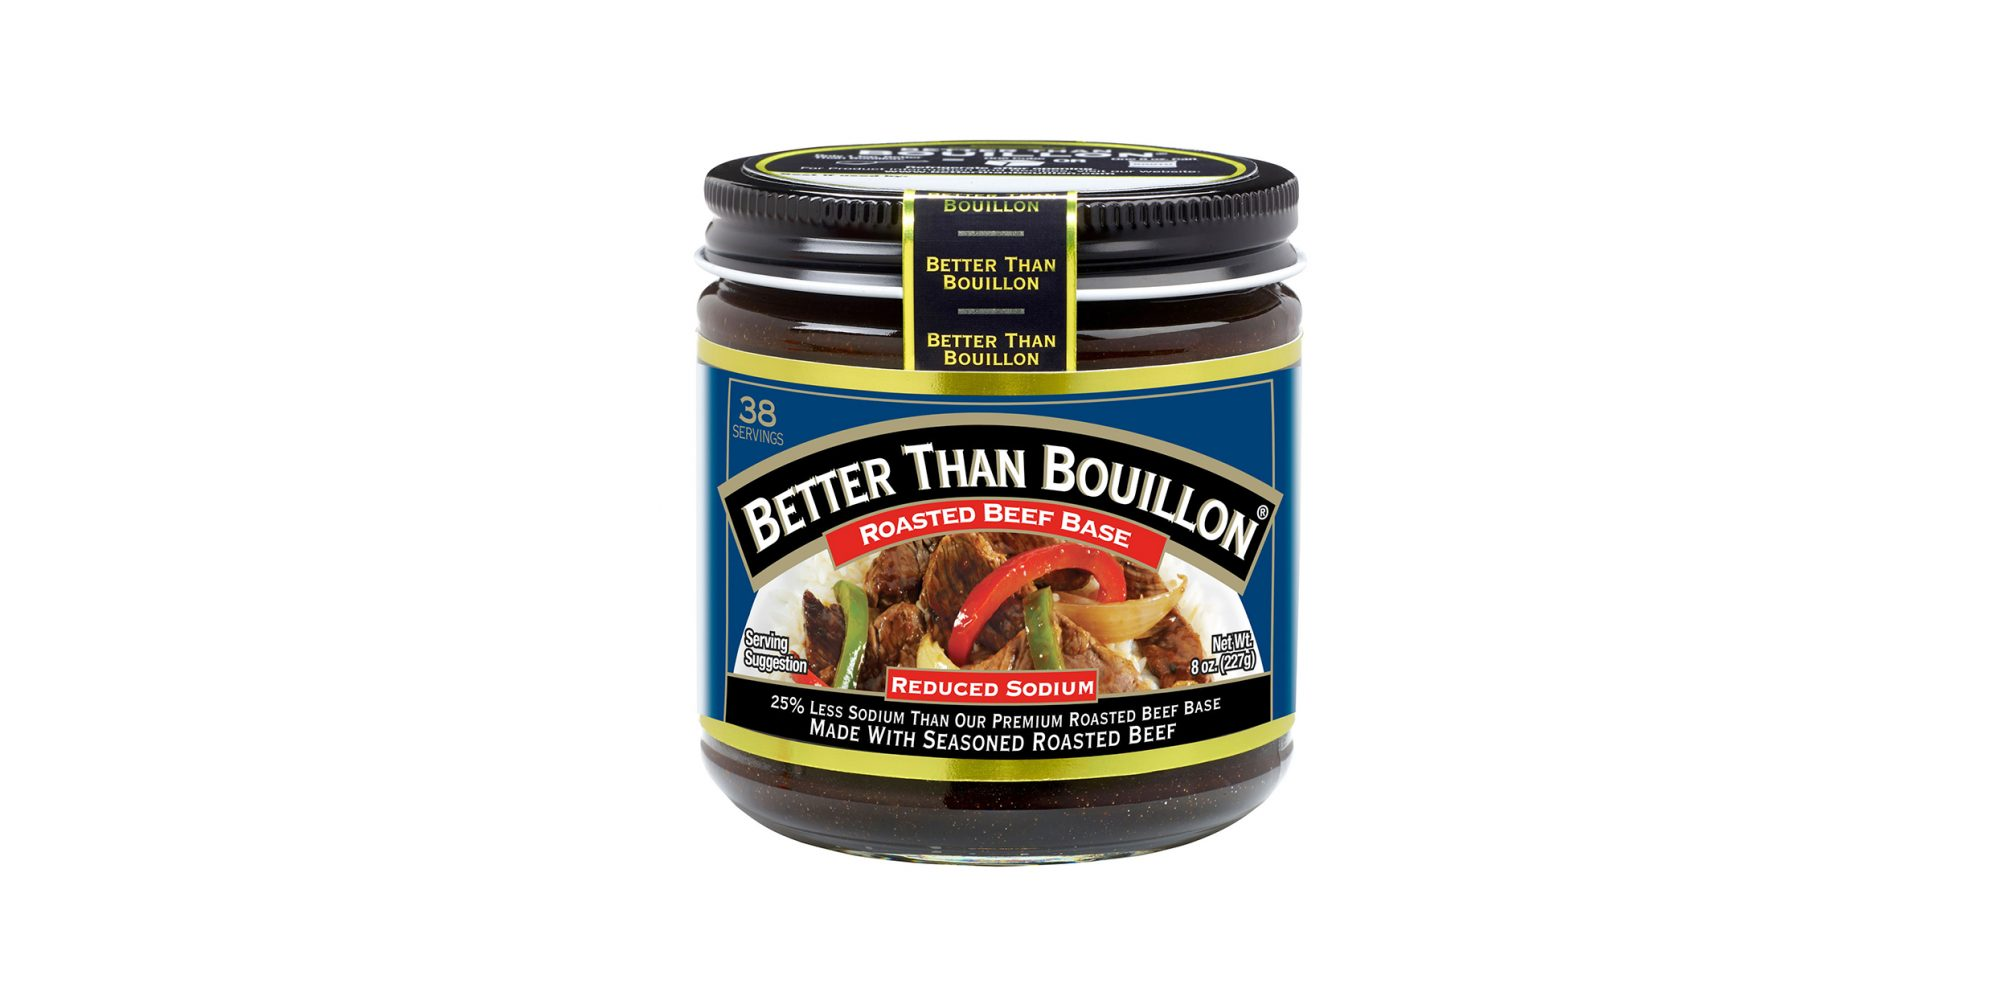 Better Than Bouillon Roasted Beef Reduced Sodium Base